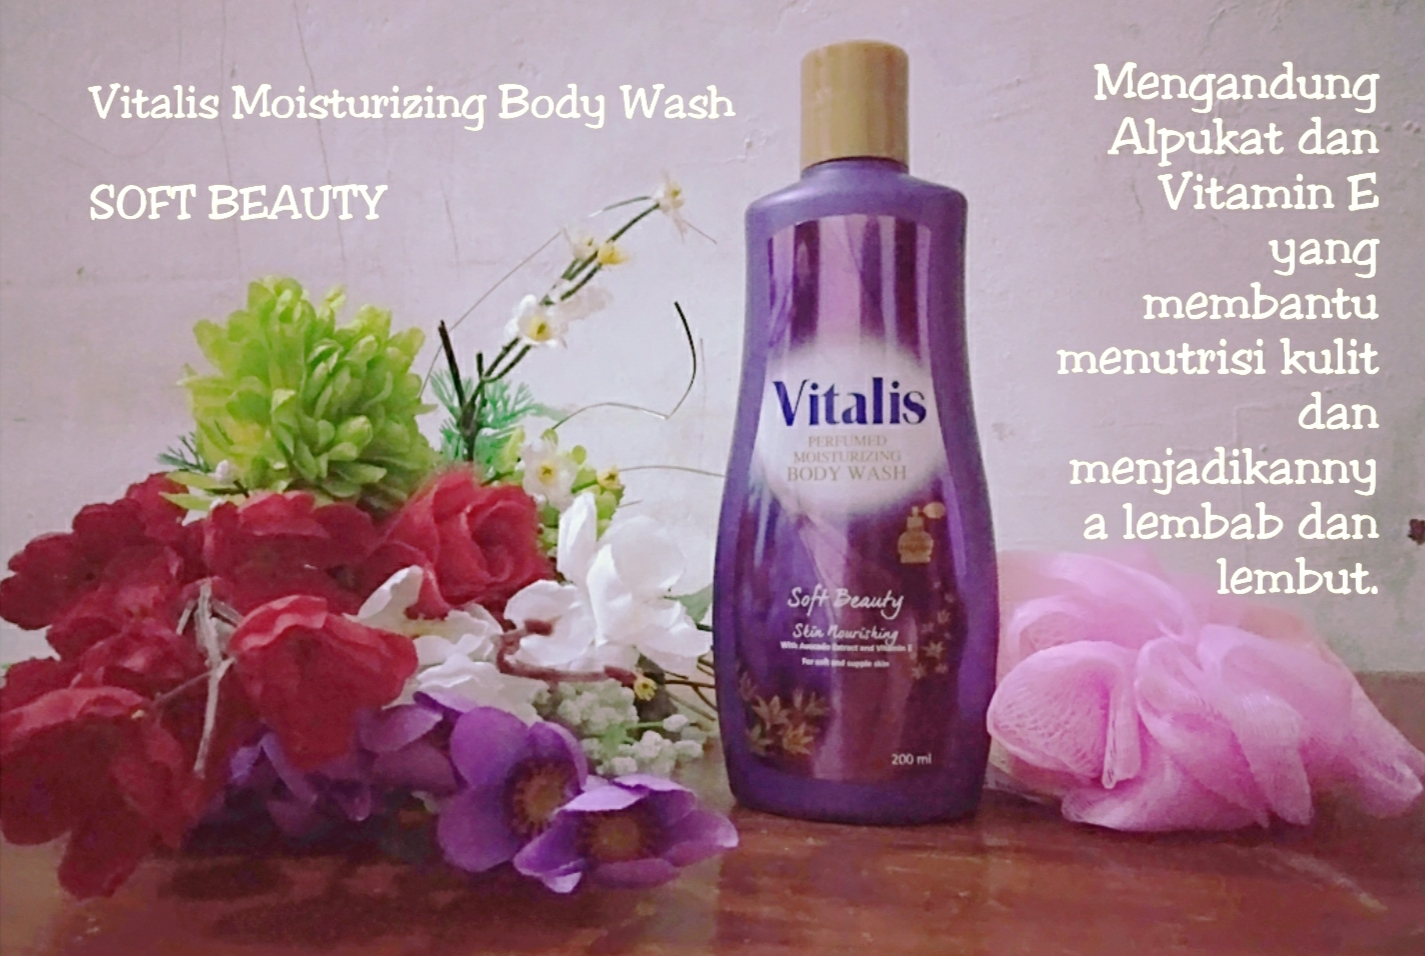 White Glow, Soft Beauty, Fresh Dazzle, Mandi Parfum, Vitalis Body Wash